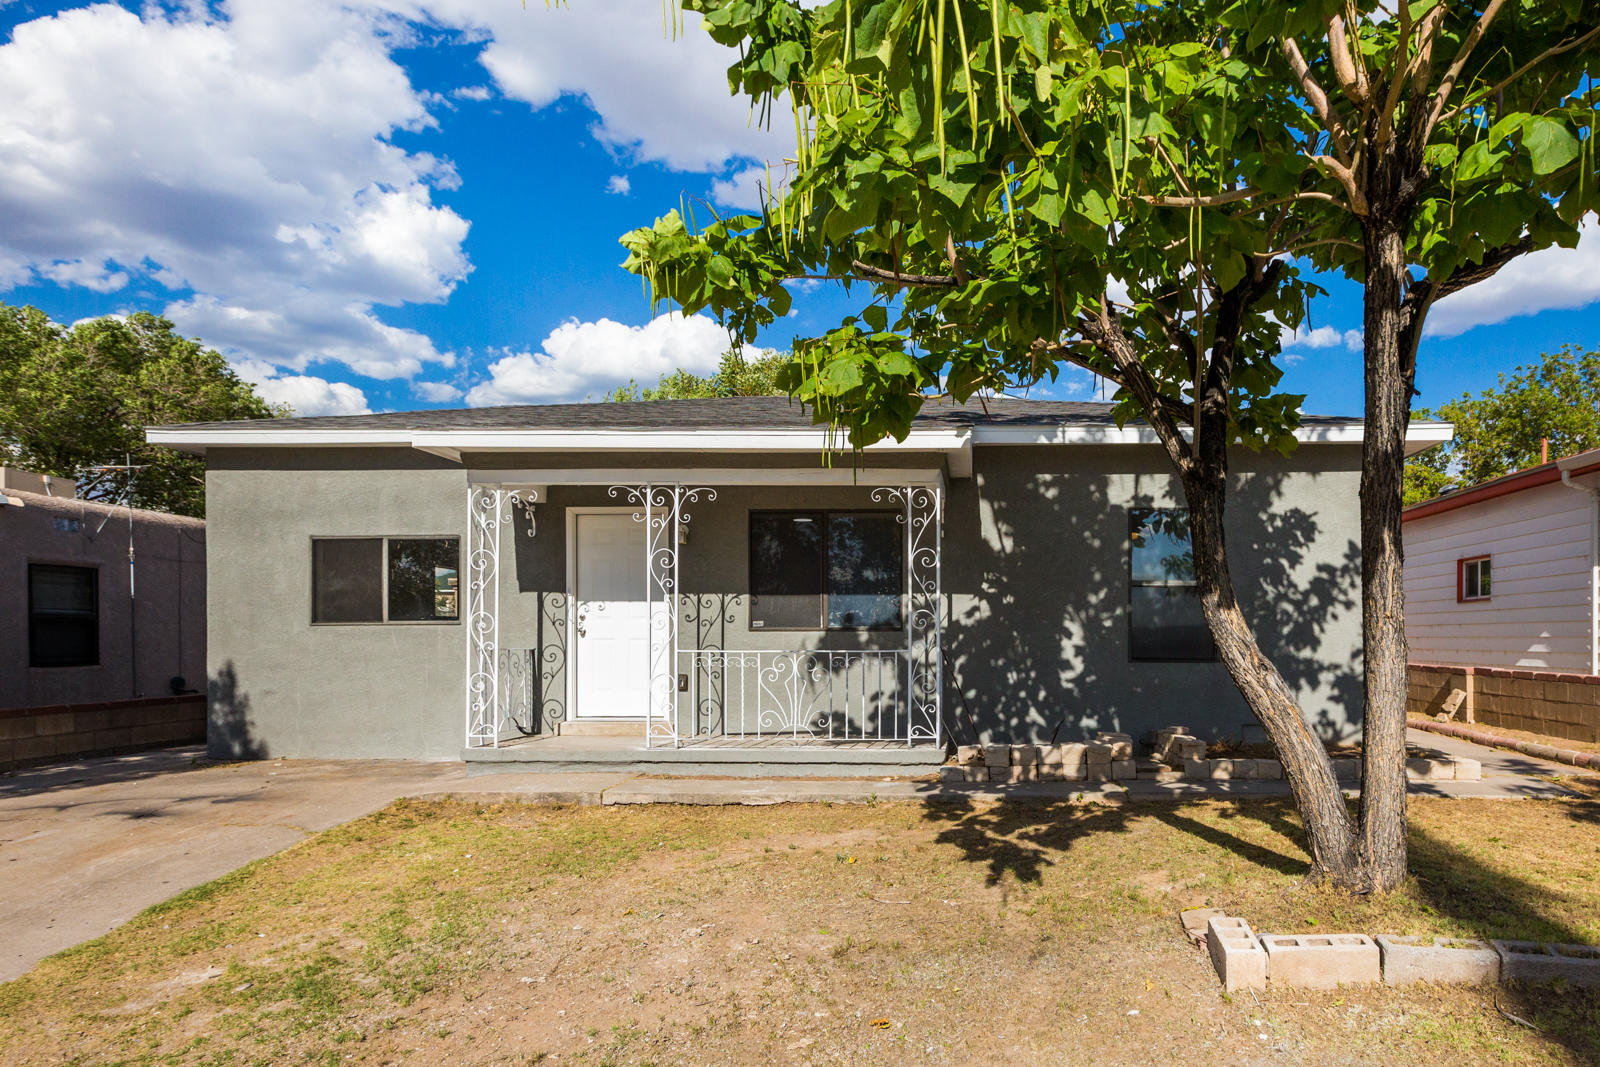 Welcome to this stunning property located across from UNM Football Stadium. This 3 bed 1 bath has recent updates including roof, AC, Water Heater, flooring, paint, and more! Home also includes workshop in the backyard for storage/art studio. Quartz countertops, remodeled bathroom, tile in laundry and kitchen, this home is ready for a new owner! Come see this property today!